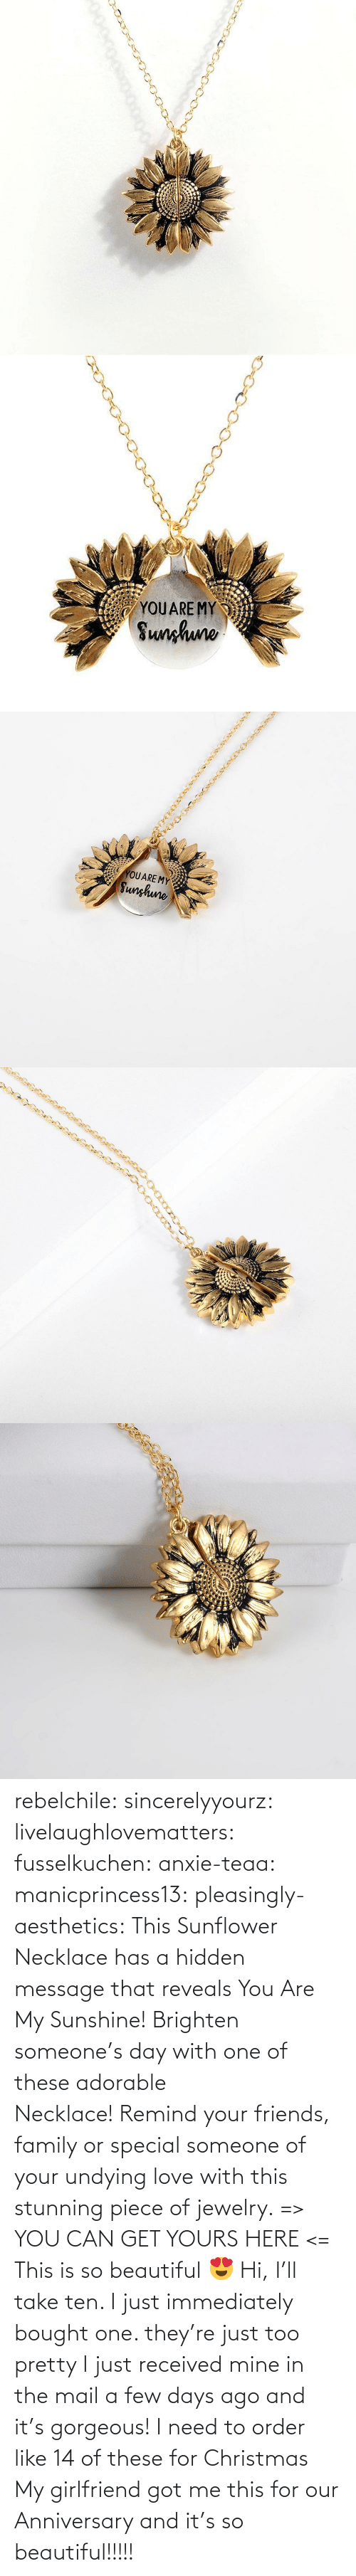 Beautiful, Christmas, and Family: rebelchile:  sincerelyyourz:  livelaughlovematters:  fusselkuchen:  anxie-teaa:   manicprincess13:   pleasingly-aesthetics:  This Sunflower Necklace has a hidden message that reveals You Are My Sunshine! Brighten someone's day with one of these adorable Necklace! Remind your friends, family or special someone of your undying love with this stunning piece of jewelry. => YOU CAN GET YOURS HERE <=   This is so beautiful 😍    Hi, I'll take ten.    I just immediately bought one. they're just too pretty   I just received mine in the mail a few days ago and it's gorgeous!   I need to order like 14 of these for Christmas    My girlfriend got me this for our Anniversary and it's so beautiful!!!!!